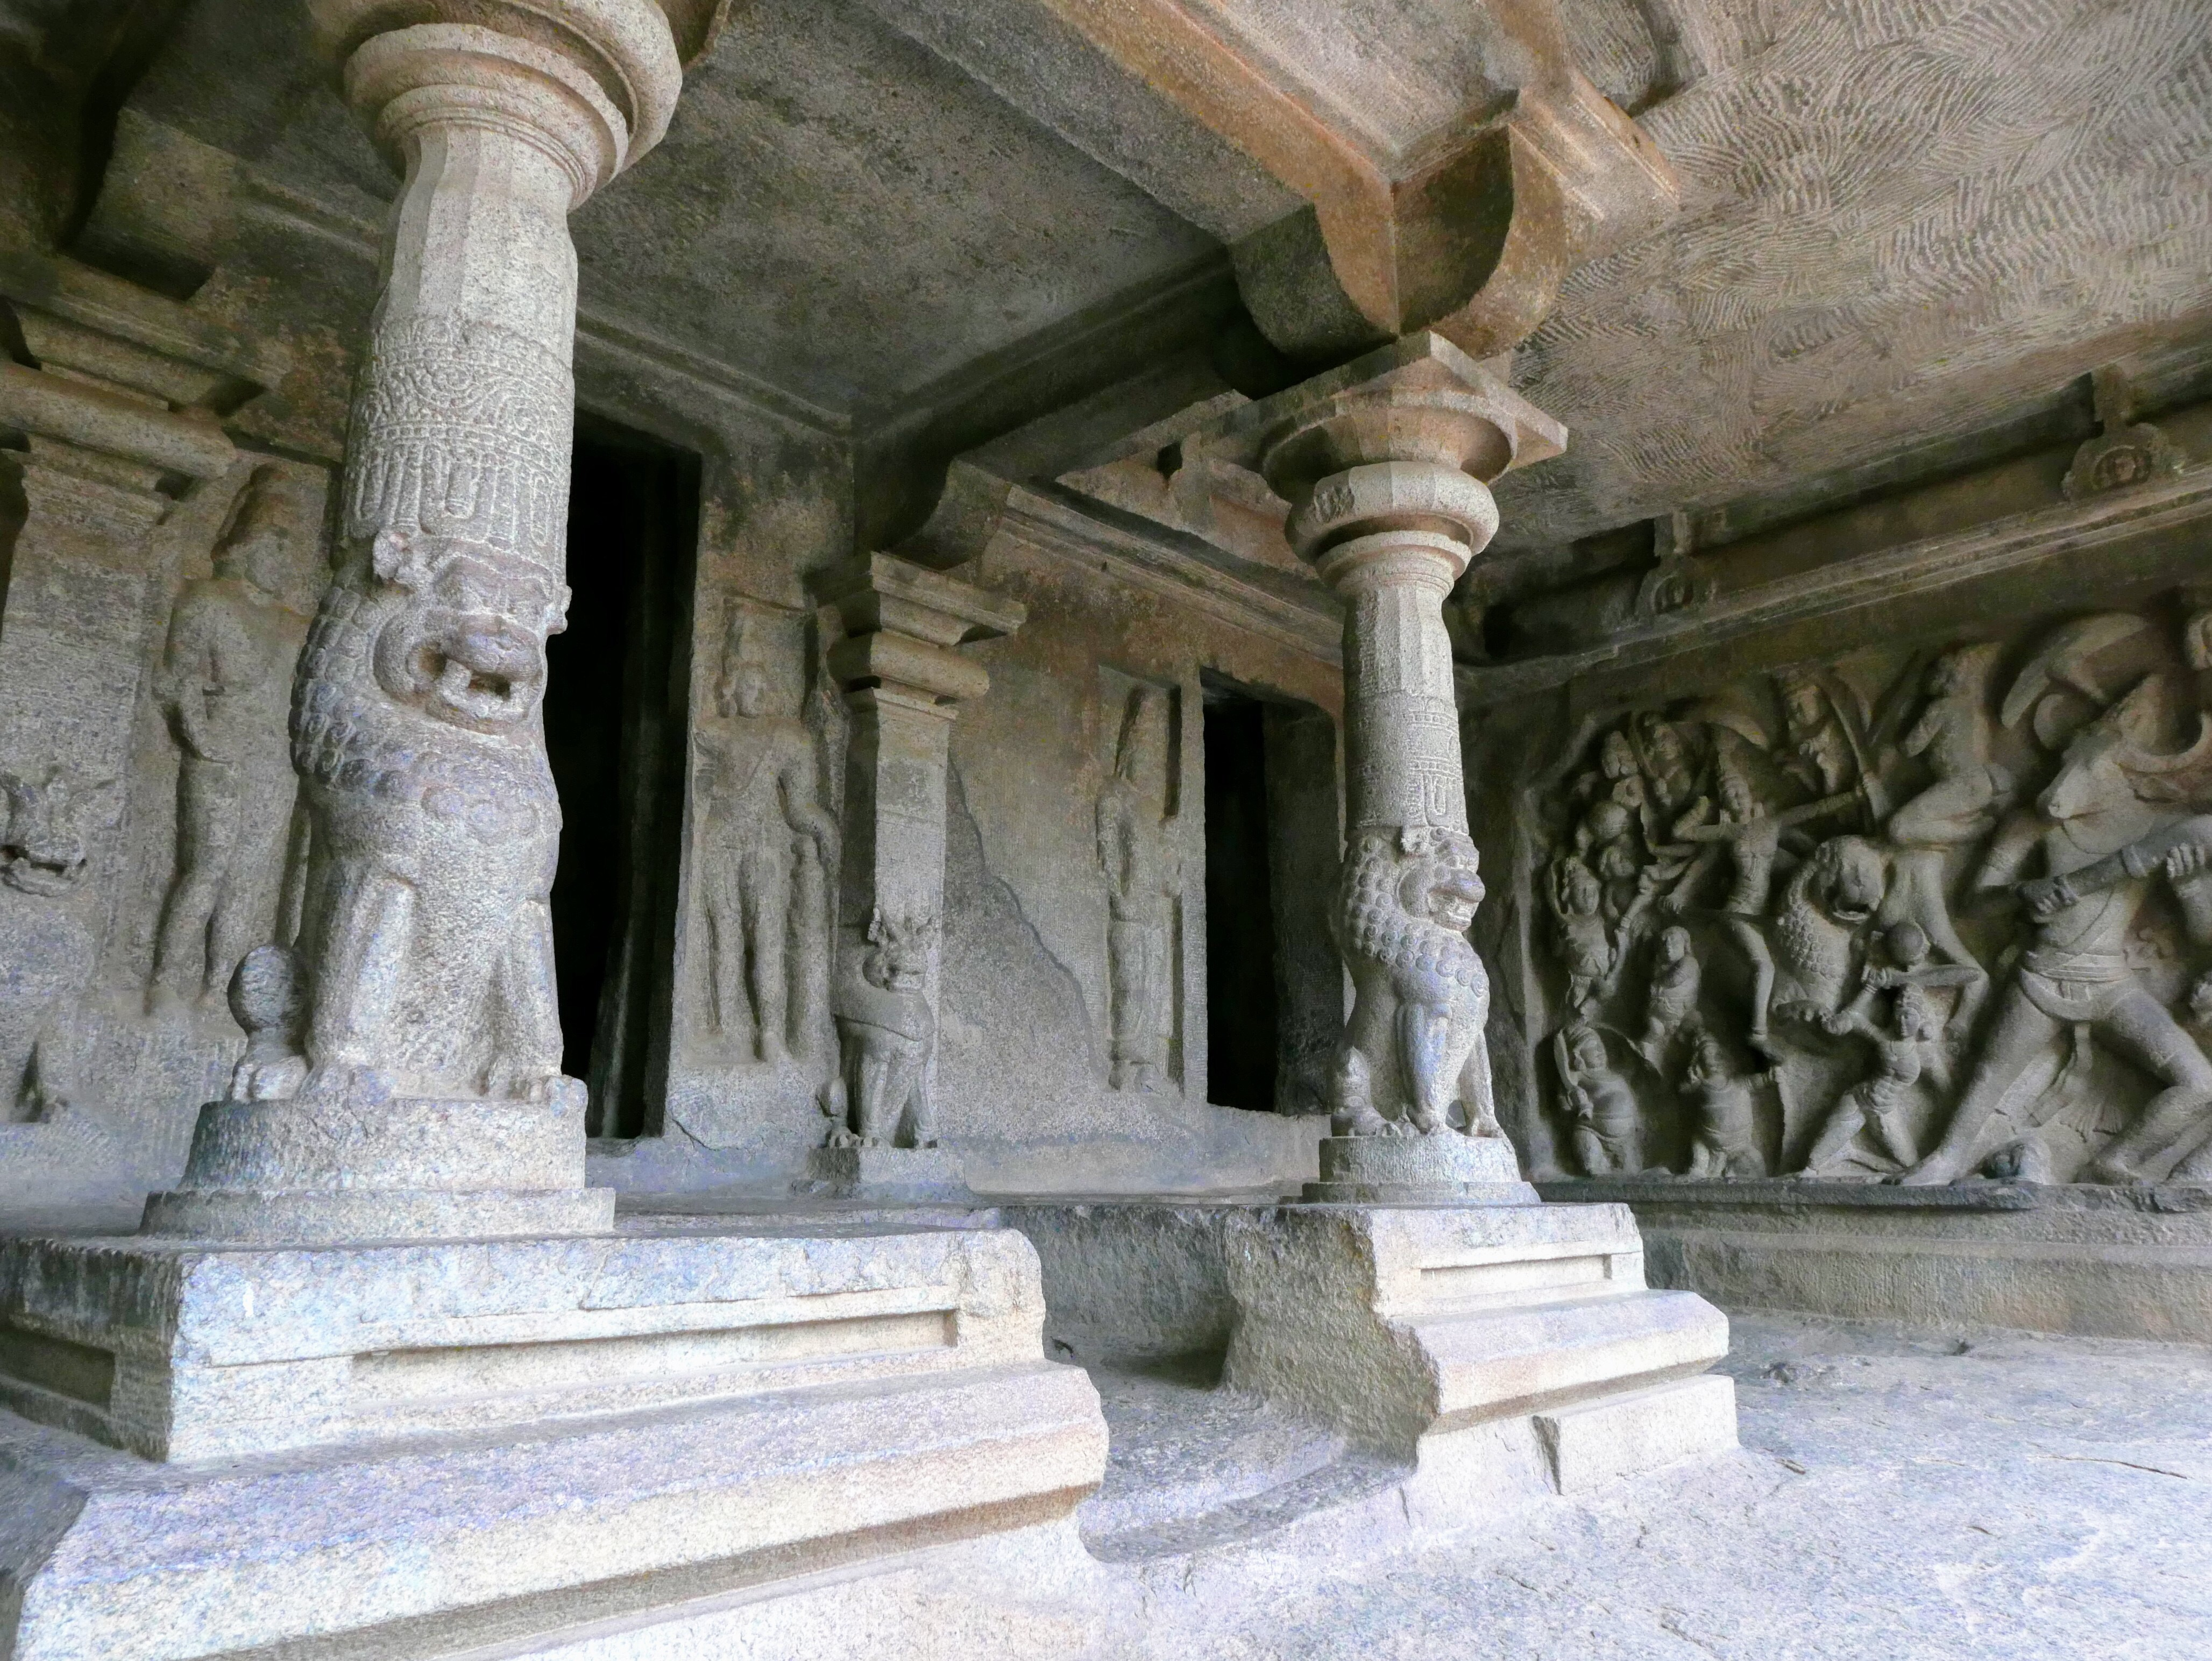 Varaha cave temple, Mahabalipuram, South India.